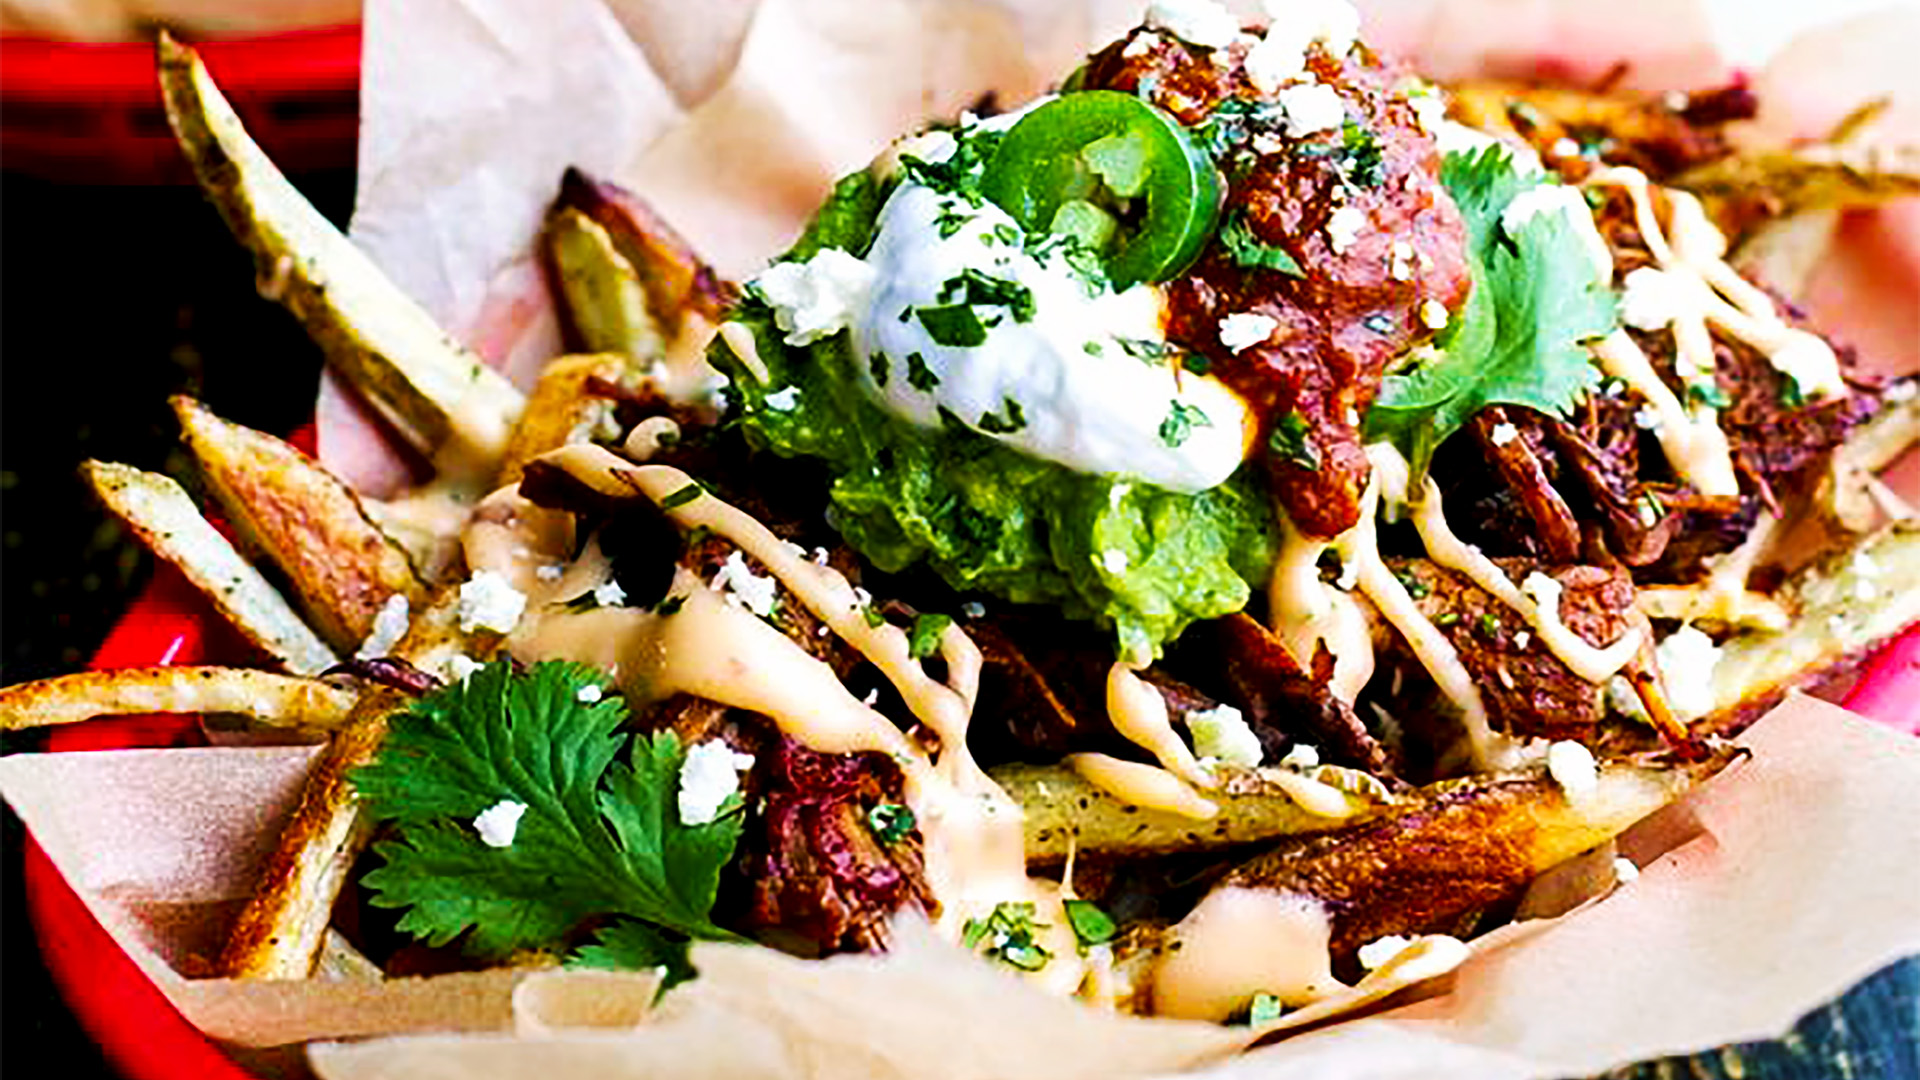 Loaded Fries Exploding Onto the Scene, Check Out These Latest Creations!